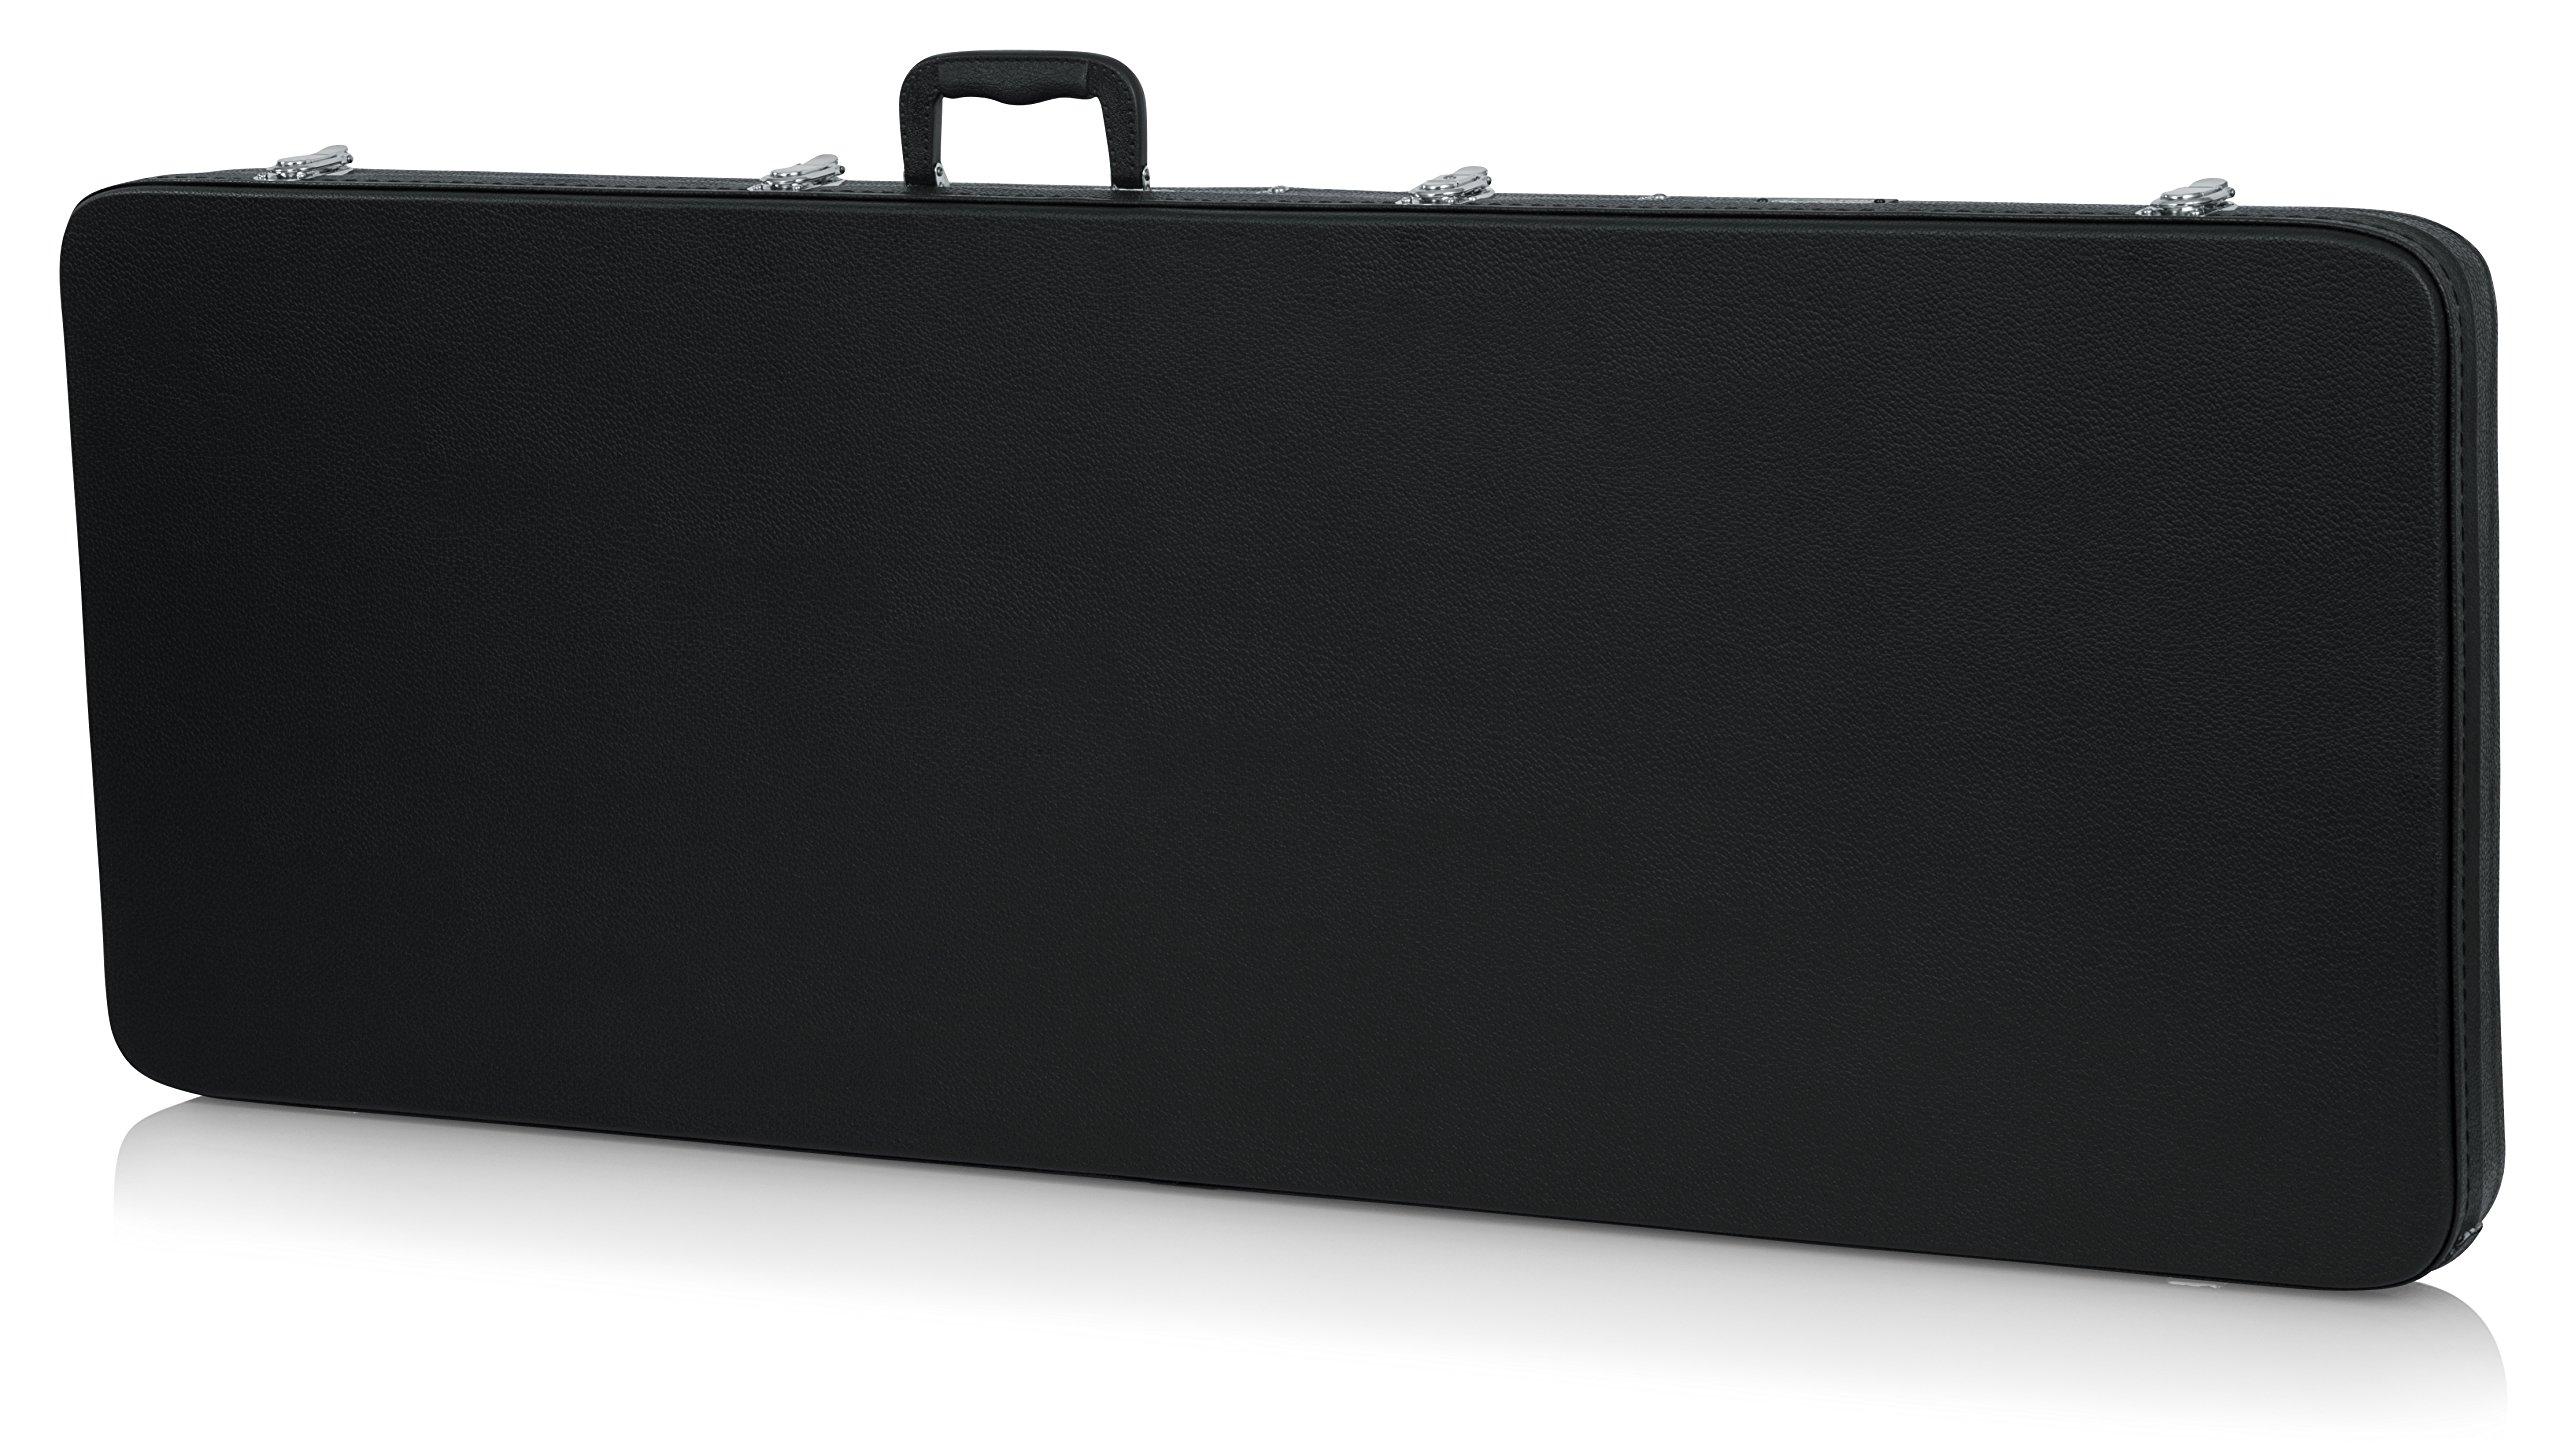 Gator Cases Hard-Shell Wood Case for Extreme Shaped Guitars; Fits Explorer, Flying V, BC Rich, & More (GWE-EXTREME)